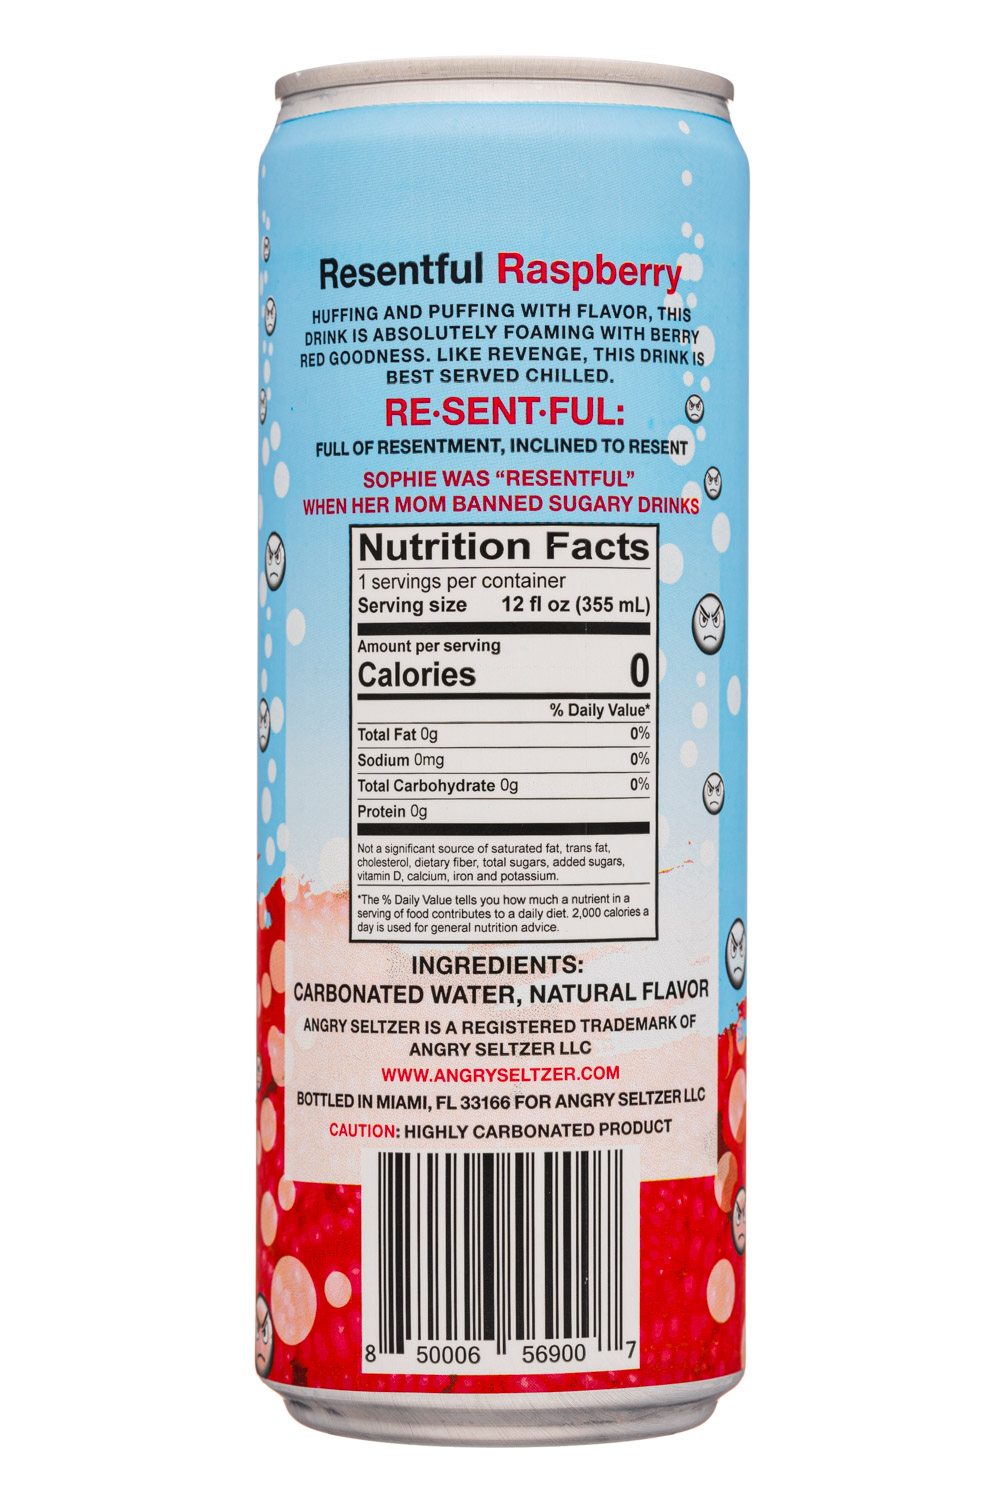 Angry Seltzer: AngrySeltzer-12oz-2020-ResentfulRaspberry-Facts